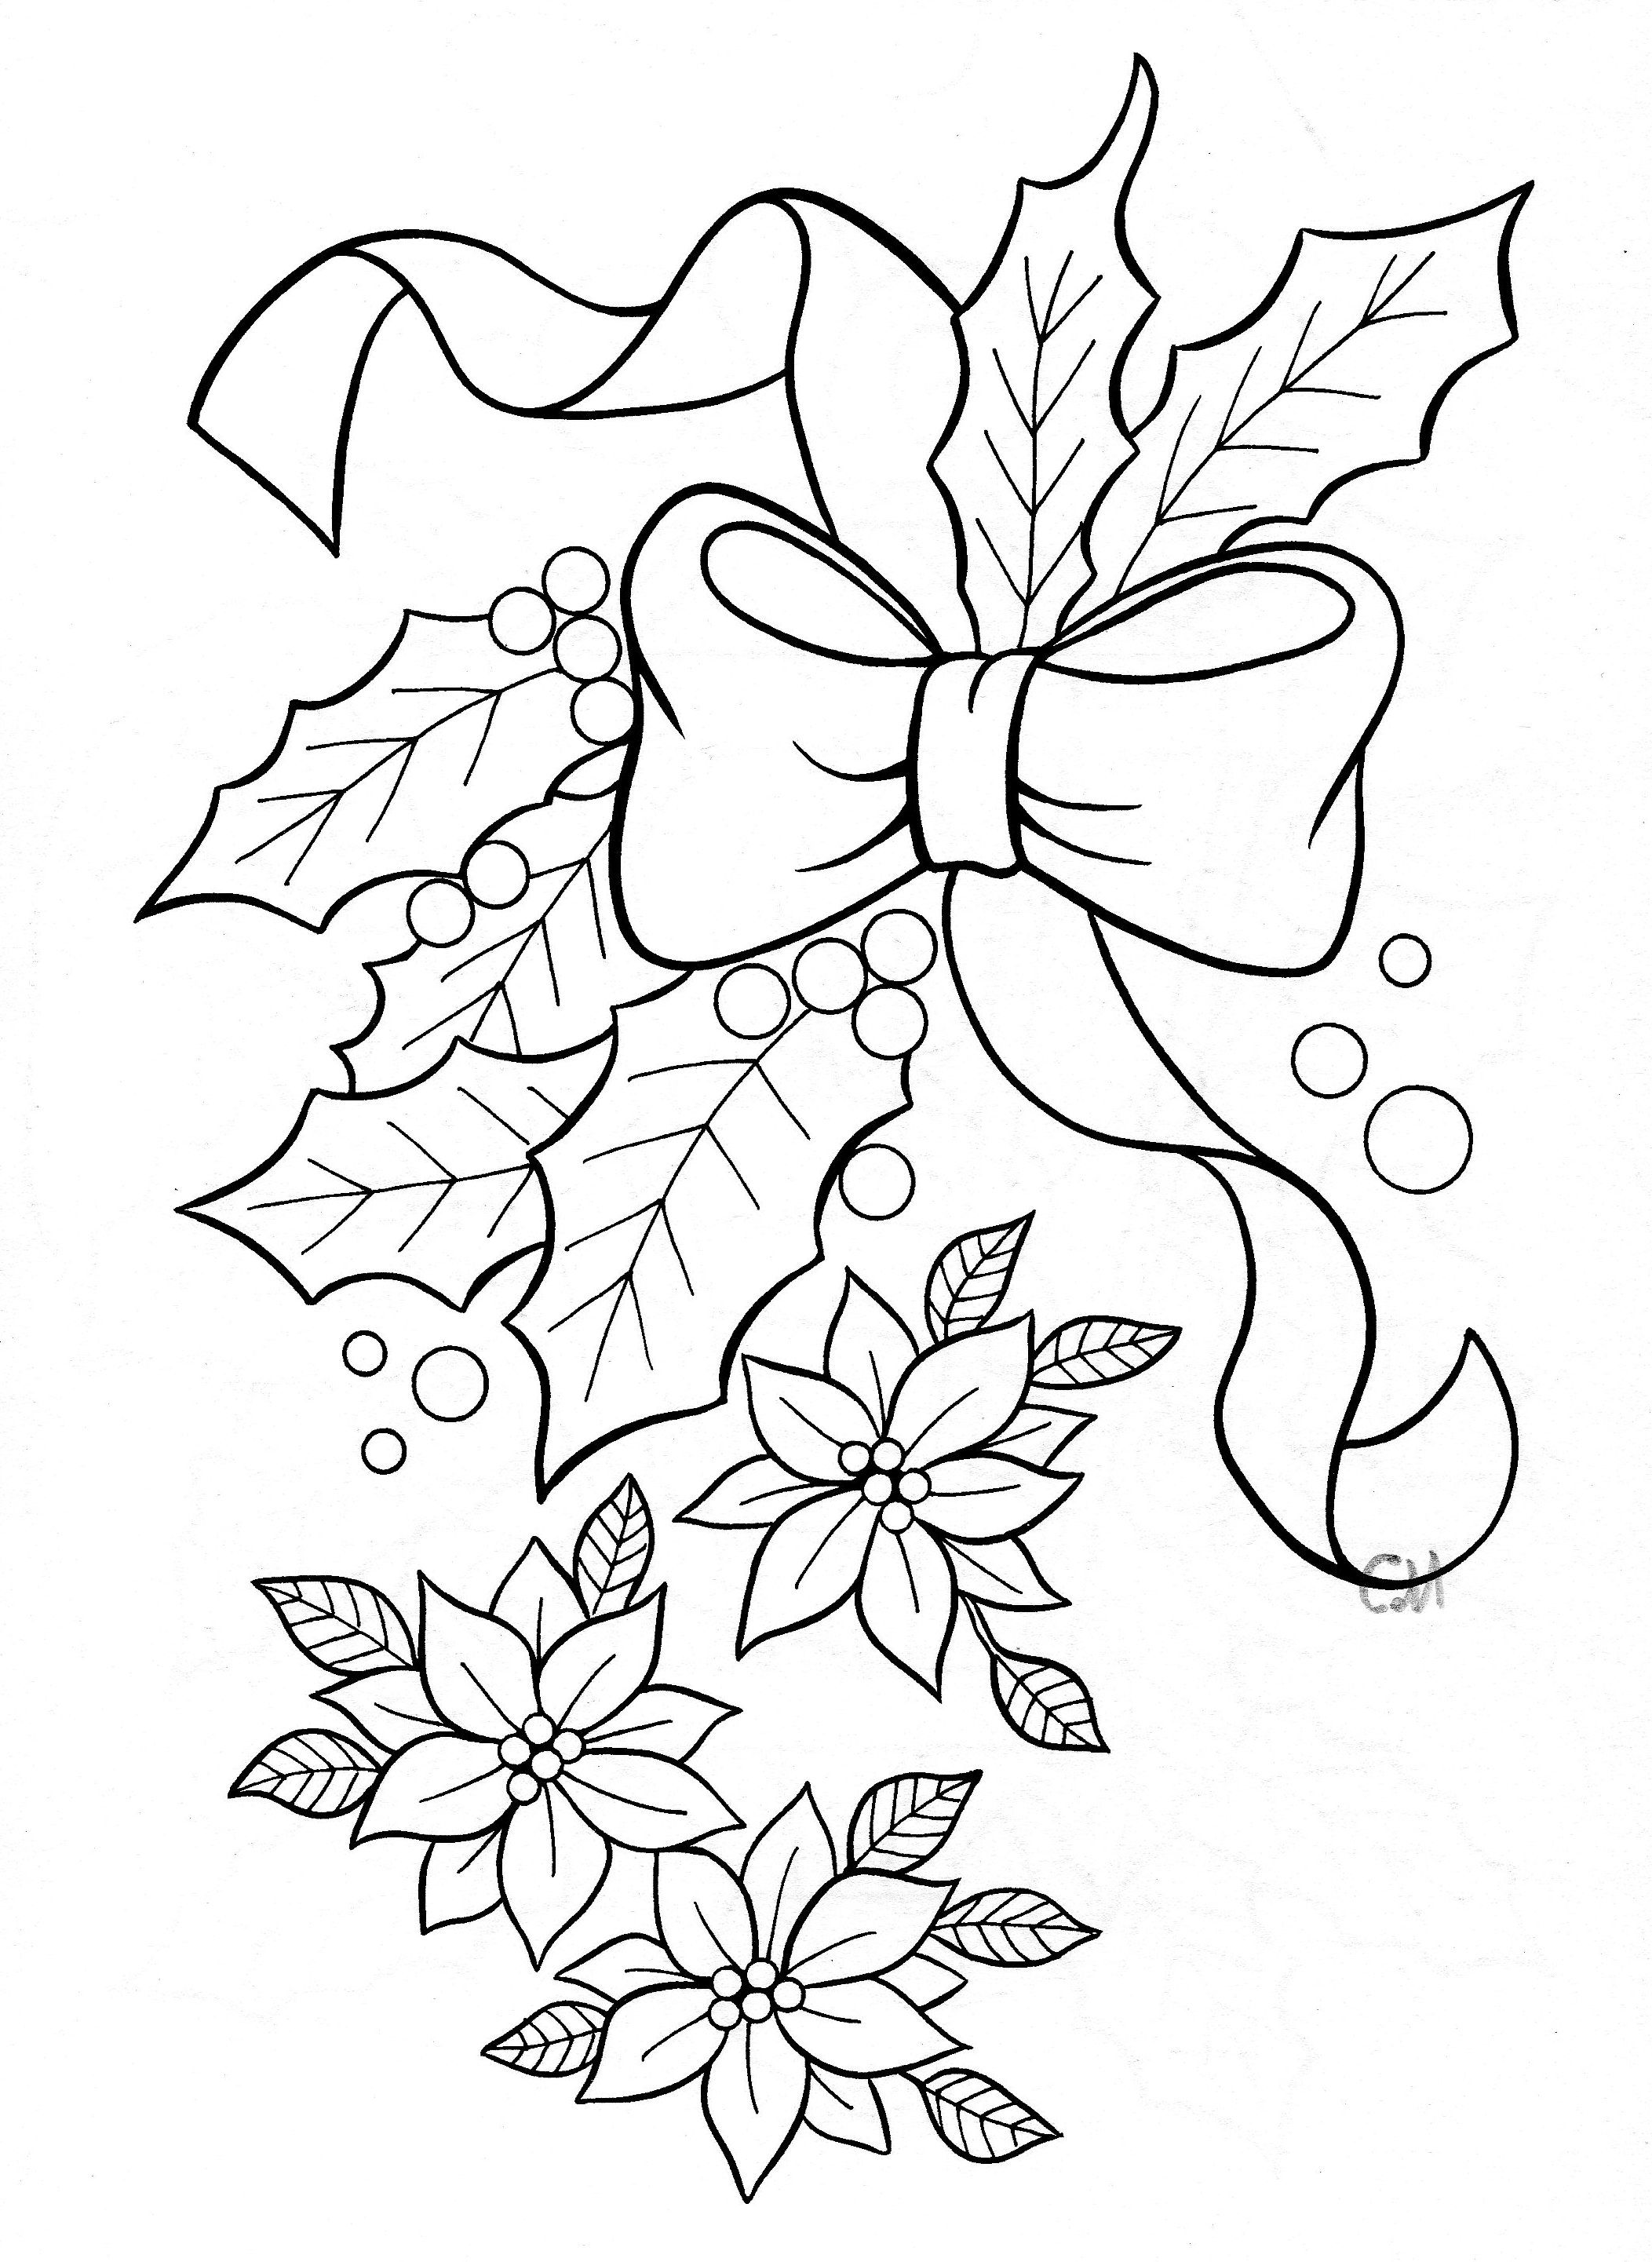 Adult Coloring And Doodle Art Drawings Clip Art Pinterest